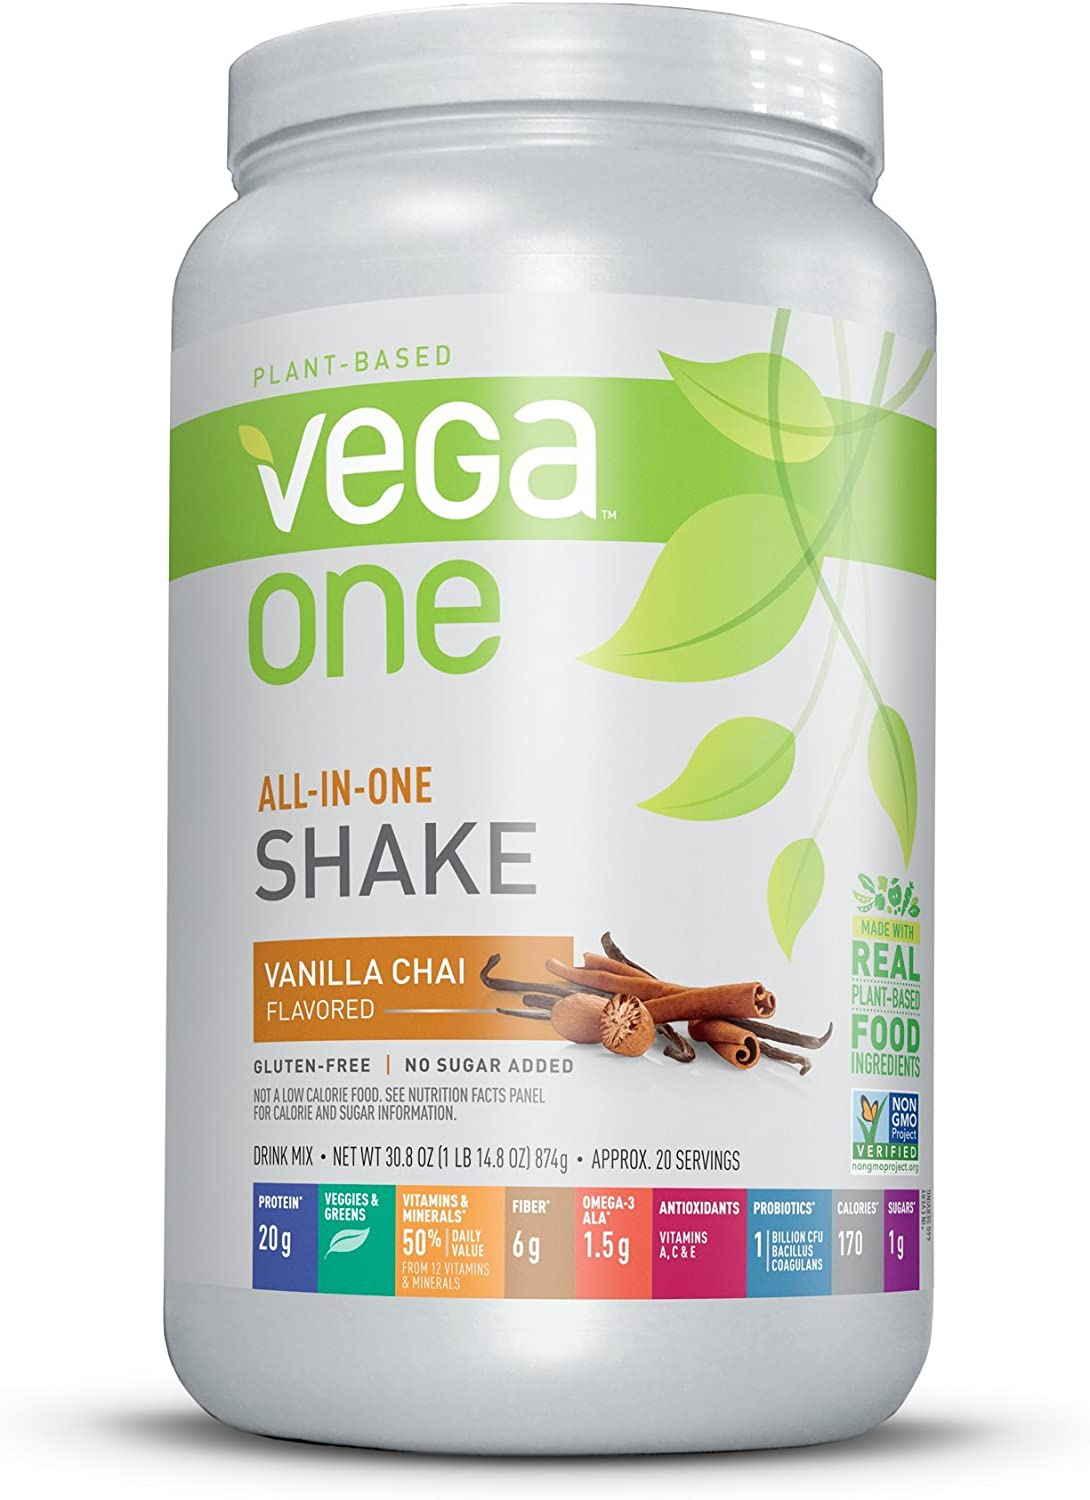 Vega One All-in-One Nutritional Shake Vanilla Chai (Tub, 30.8oz) - Plant Based Vegan Protein Powder, Non Dairy, Gluten Free, Non GMO